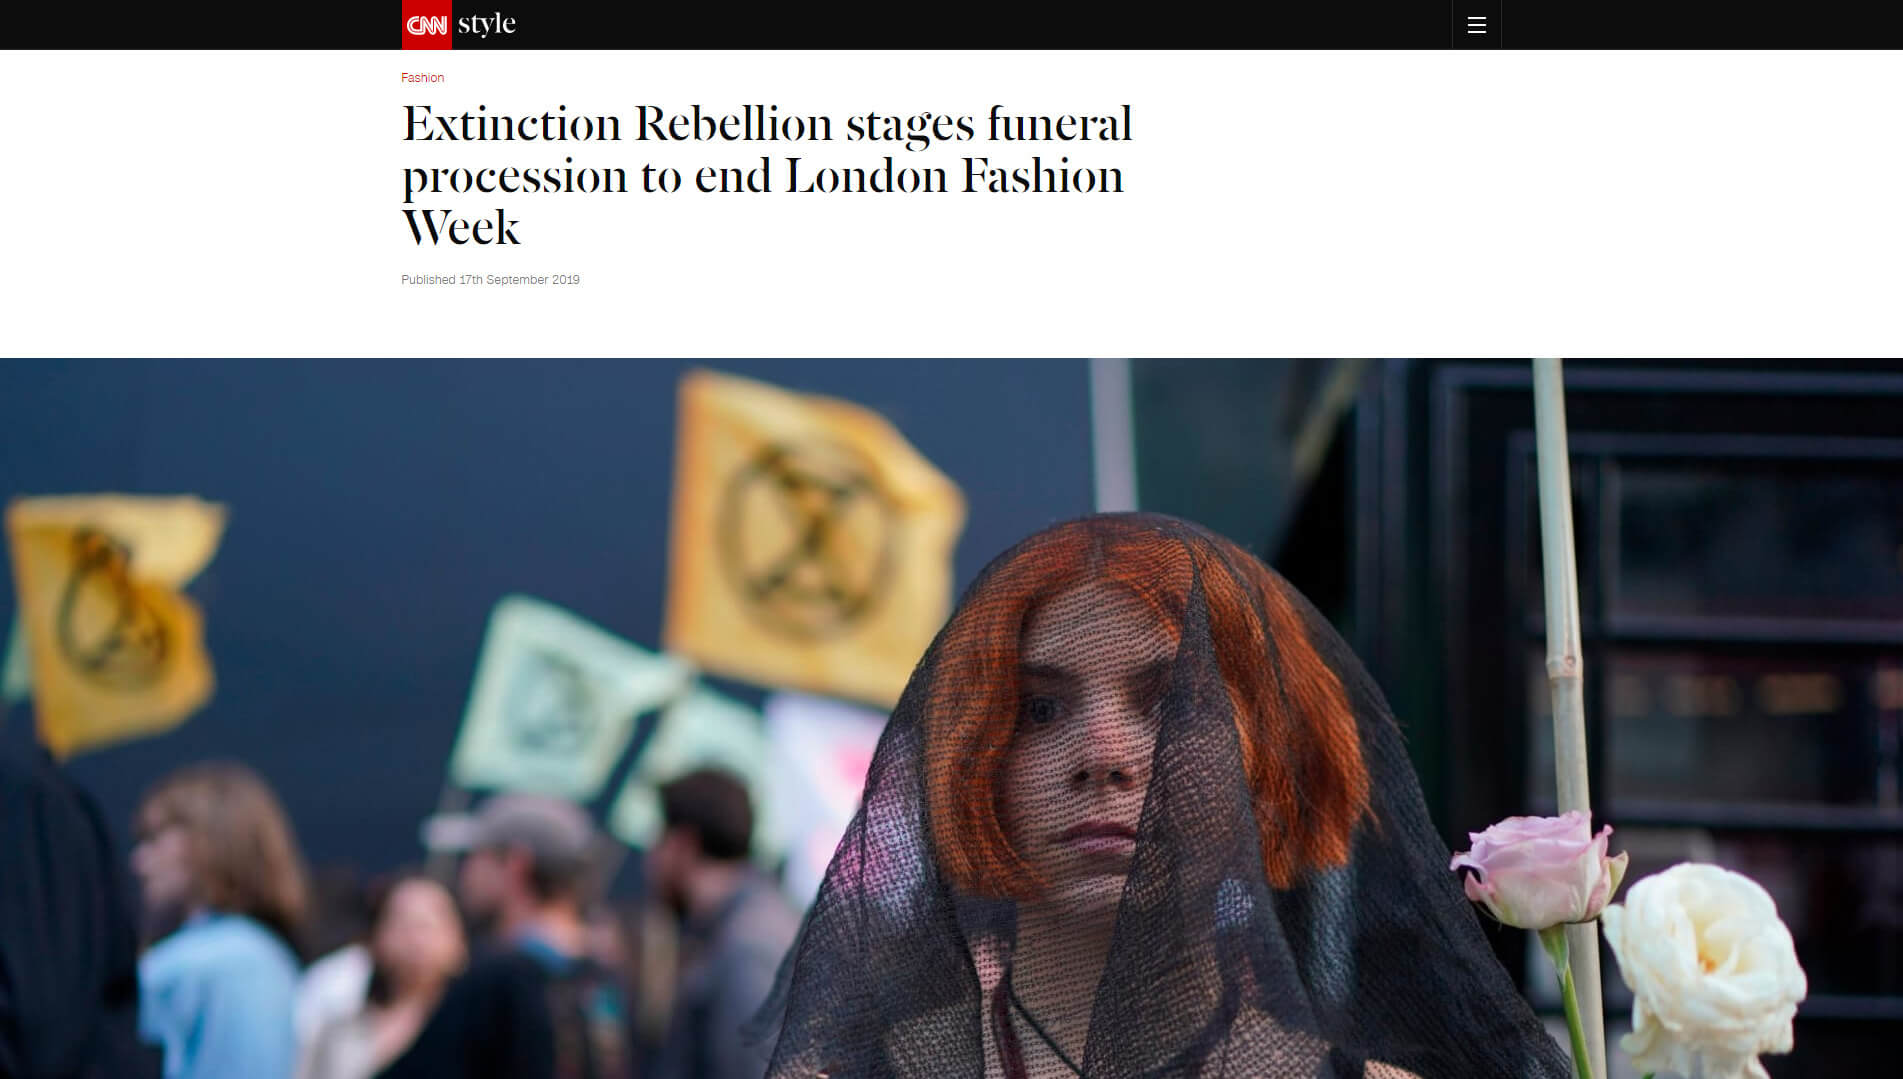 Extinction Rebellion stages funeral procession to end London Fashion Week